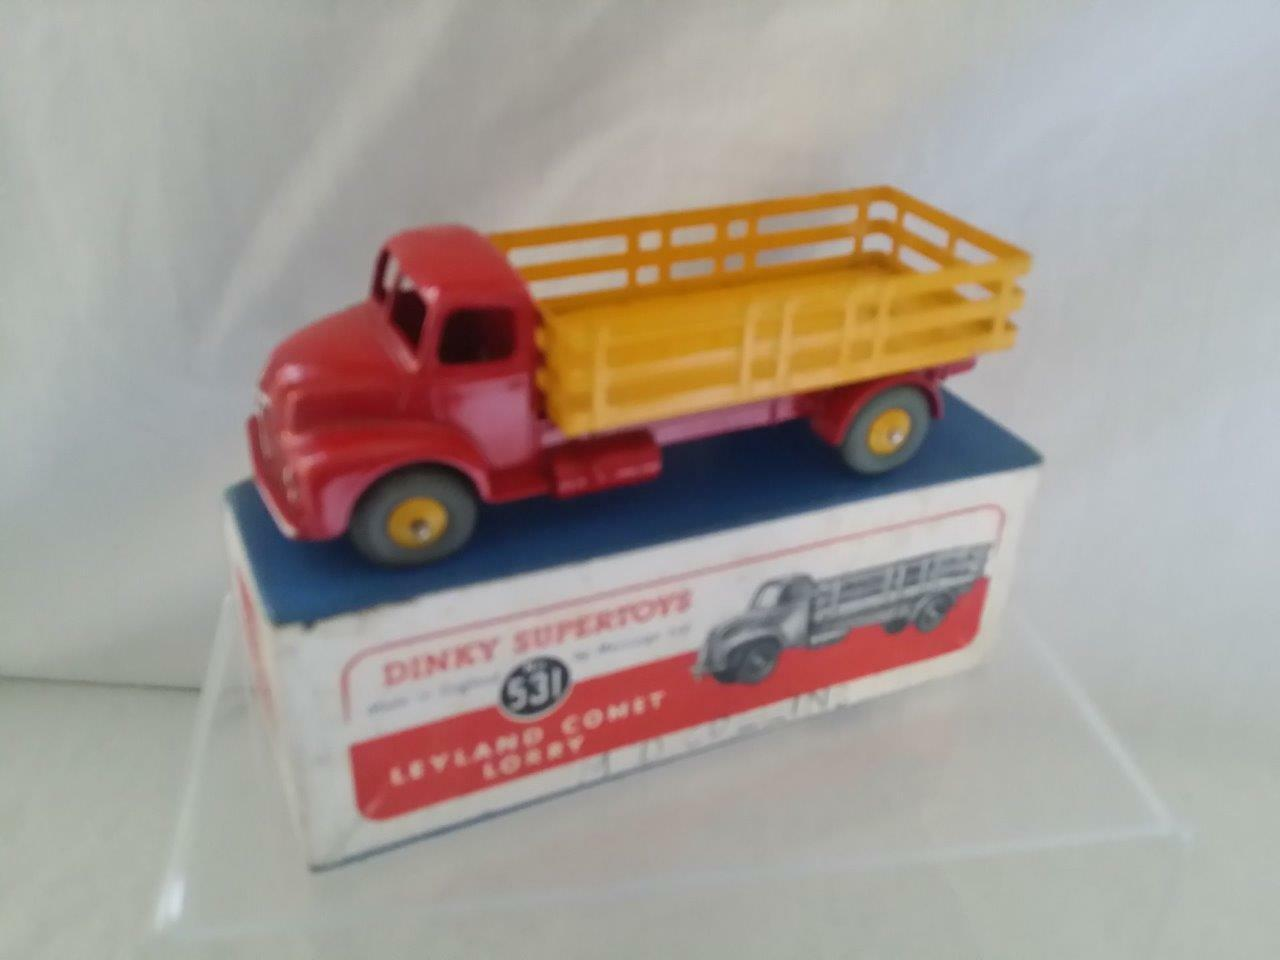 DINKY 531 LEYLAND COMET STAKE LORRY RED YELLOW EXCELLENT ORIGINAL BOXED